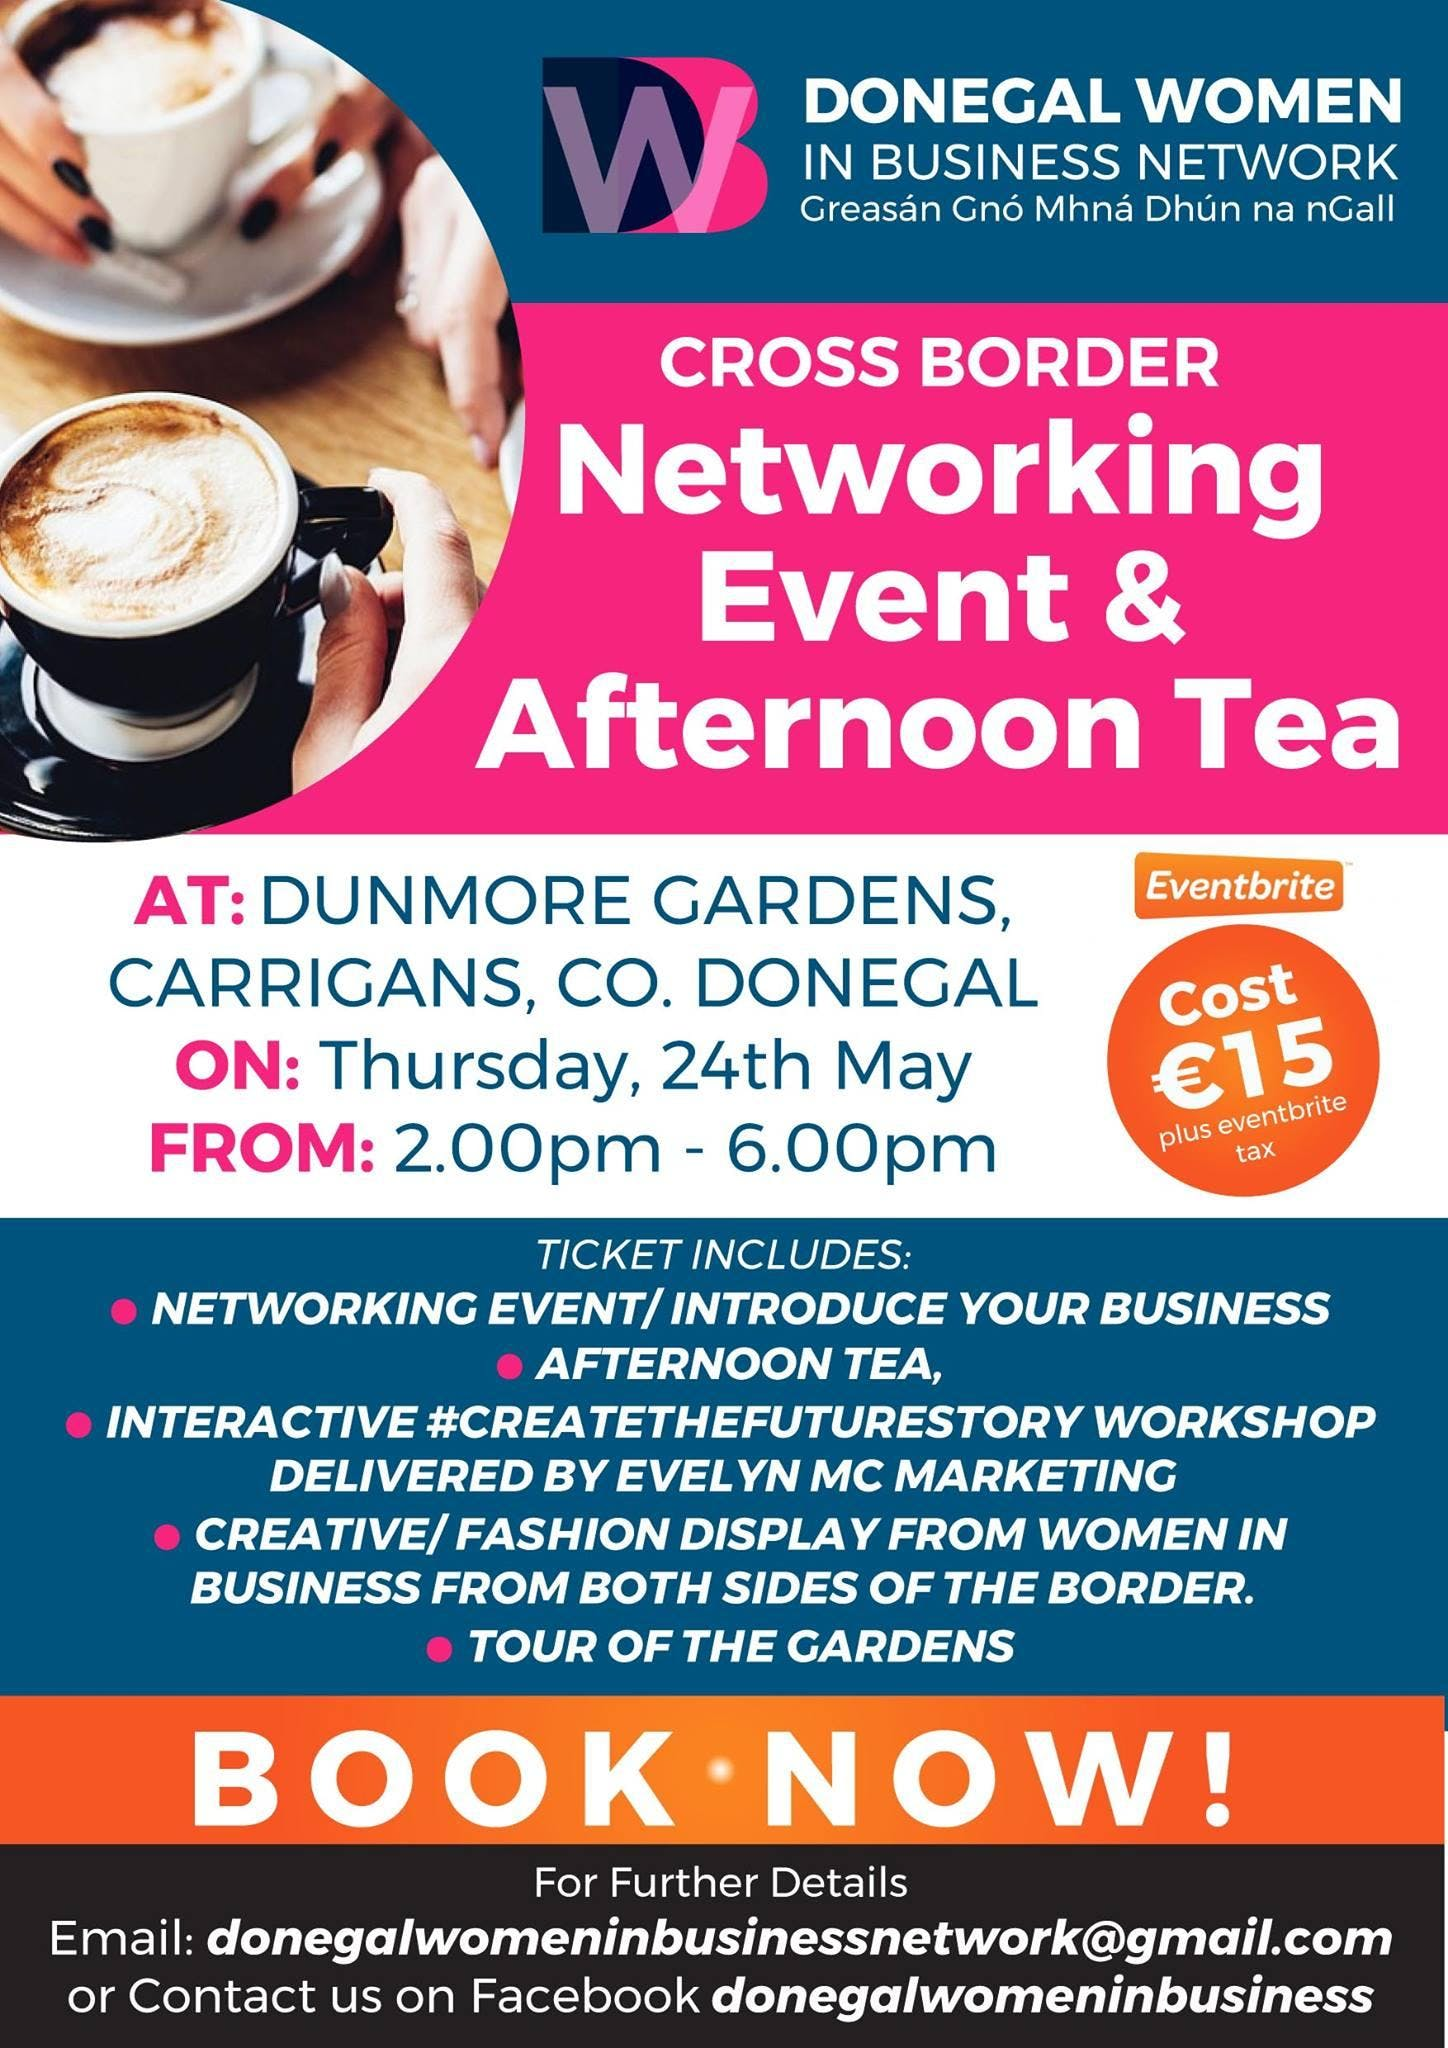 Donegal Women in Business Cross Border Networking Event & Afternoon Tea